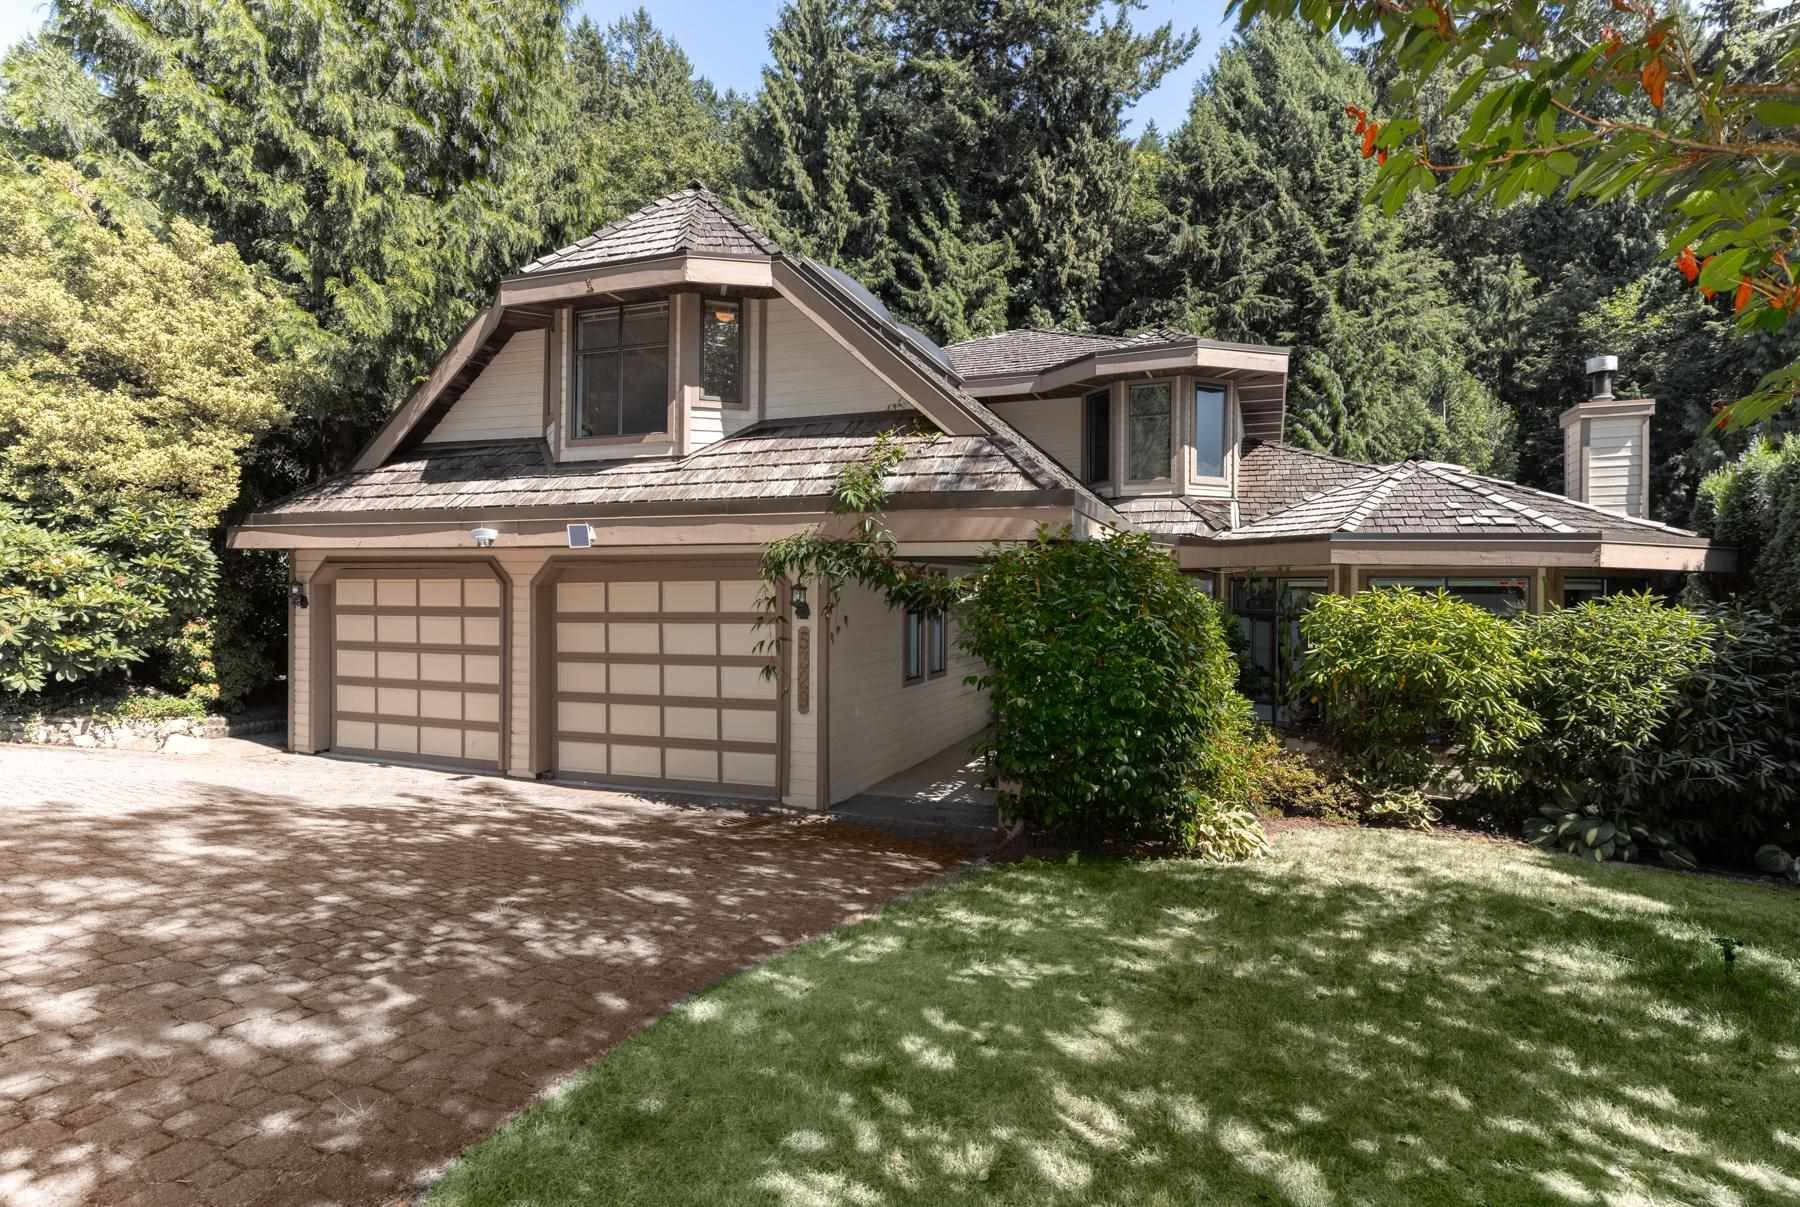 Photo of 5329 WESTHAVEN WYND, West Vancouver, BC V7W 3E8 (MLS # R2617294)